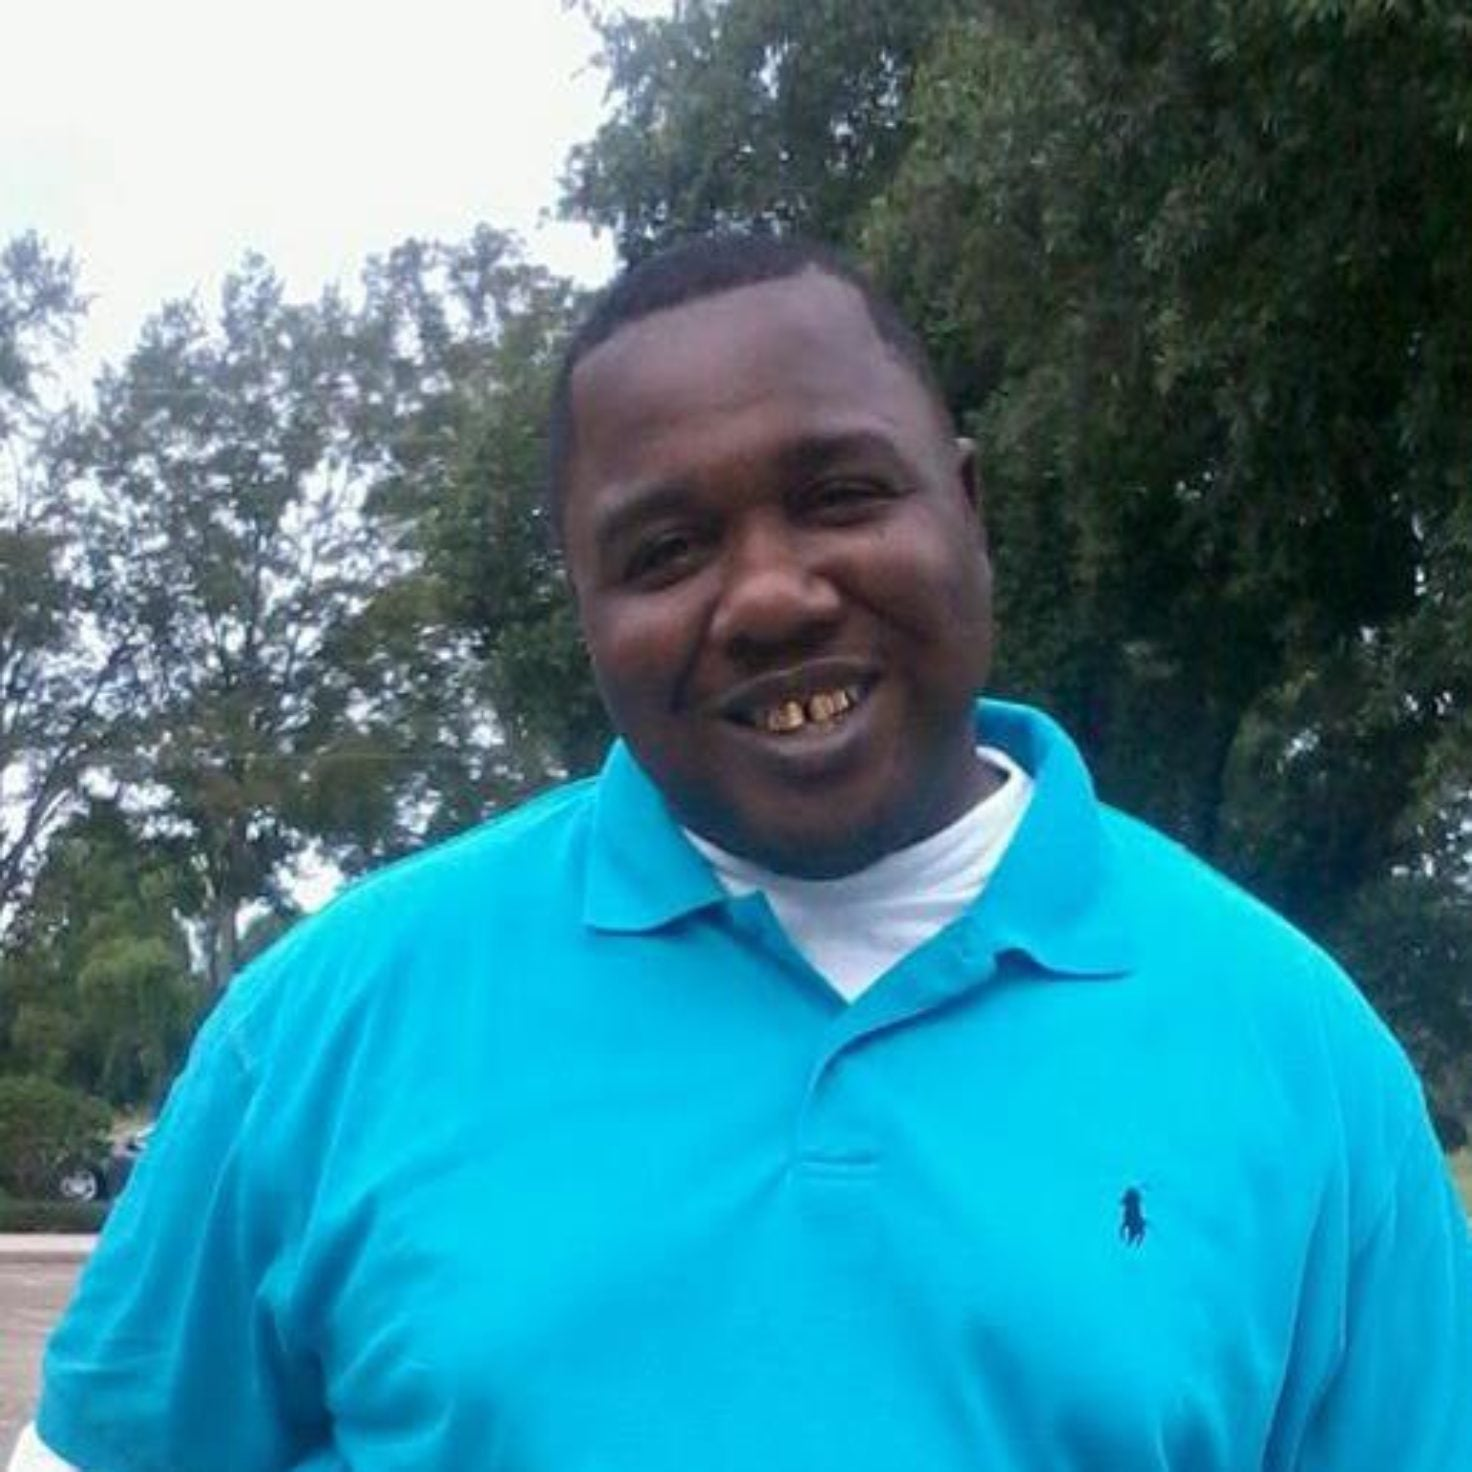 Here's Everything We Know About The Alton Sterling Police Killing